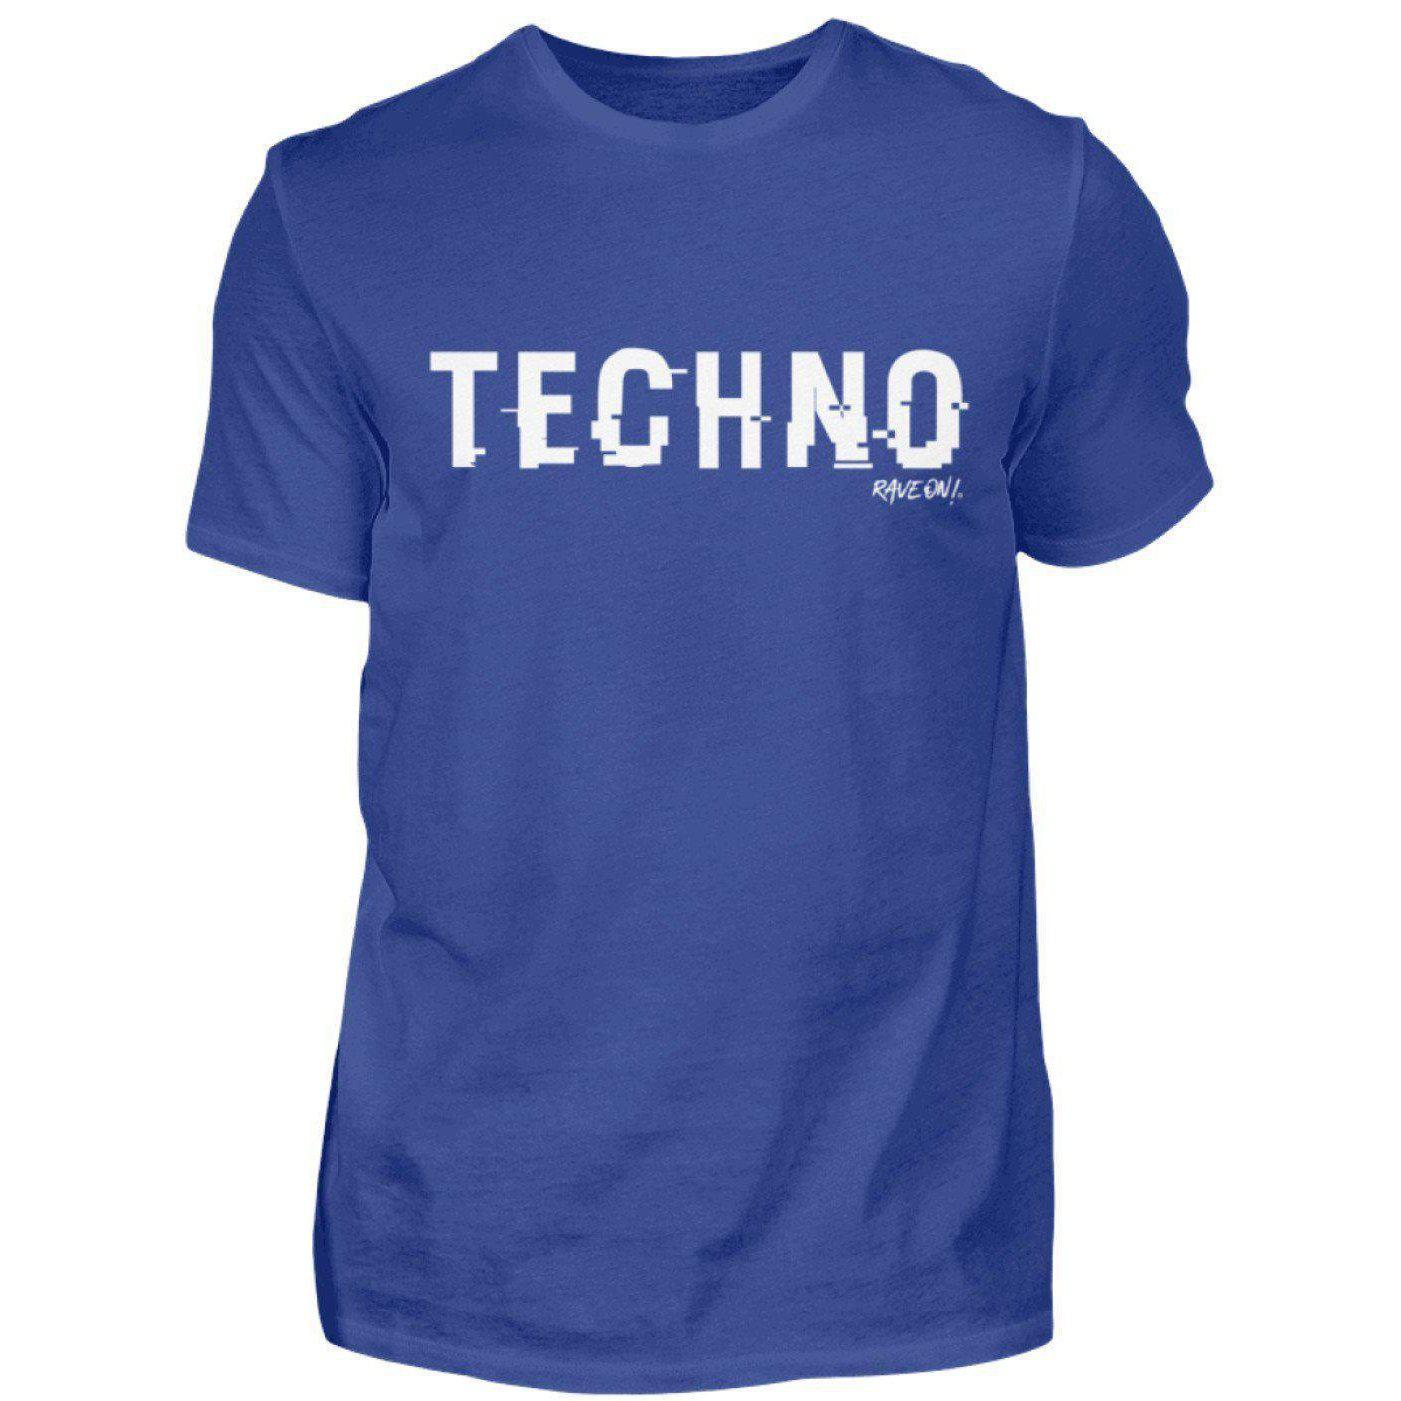 TECHNO shifted Rave On!® - Herren Shirt-Herren Basic T-Shirt-Royalblau-S-Rave-On! I www.rave-on.shop I Deine Rave & Techno Szene Shop I apparel, brand, design, Design - TECHNO shifted Rave On!® T-Shirt, i heart raves, music, on, on!®, rave, rave apparel, rave clothes, rave clothing, rave fashion, rave gear, Rave on, Rave on!®, rave shop, rave t shirt, rave wear, raver, shifted, techno, techno apparel, ® - Sexy Festival Streetwear , Clubwear & Raver Style